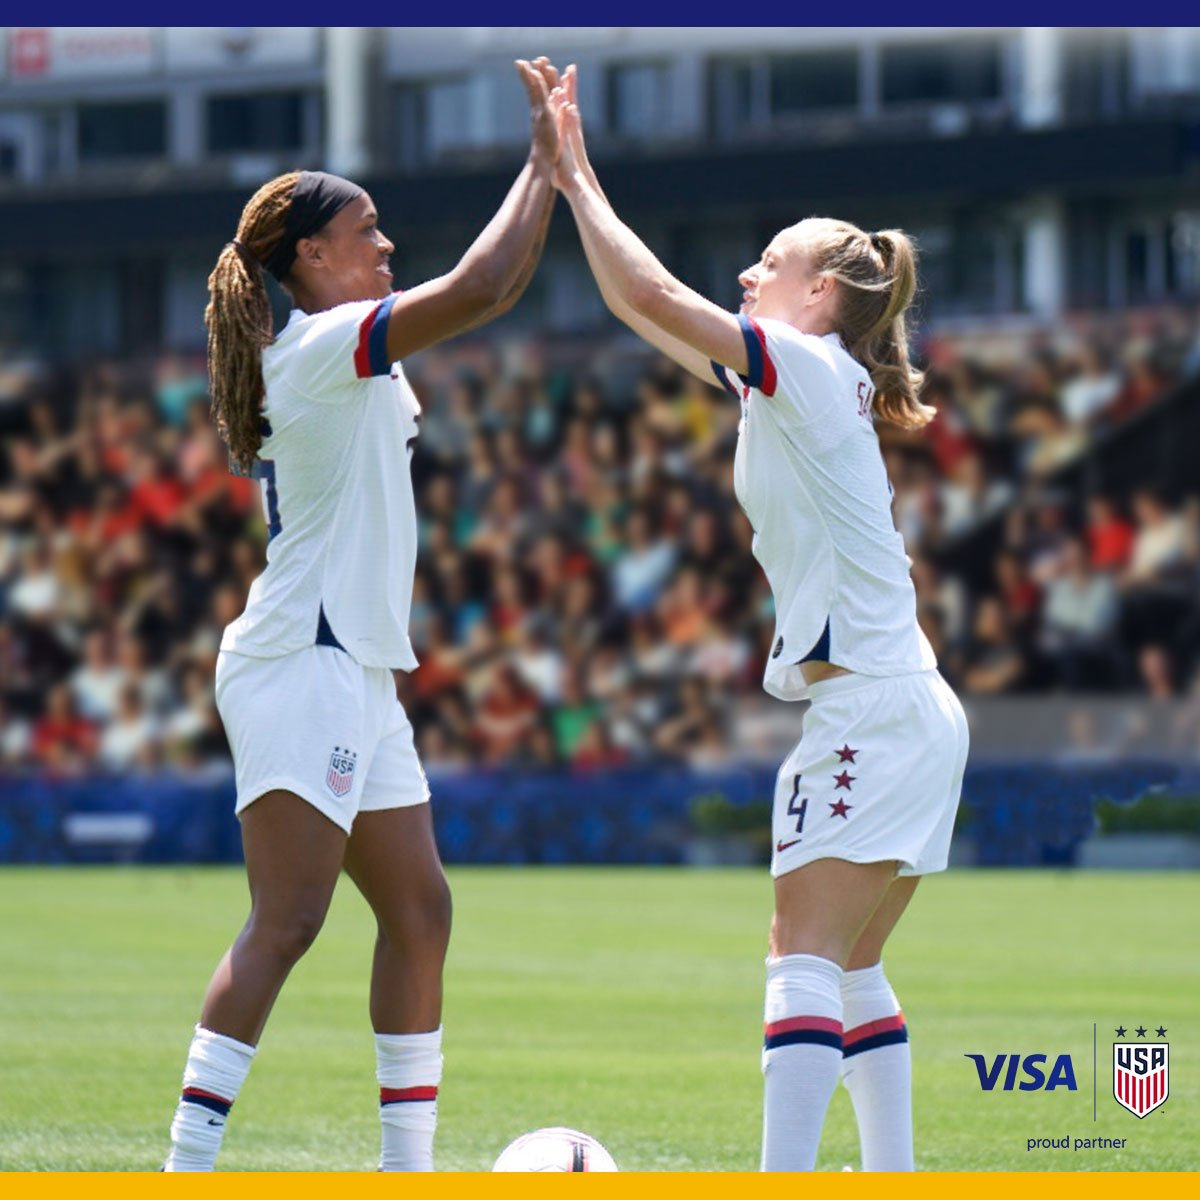 Never in doubt. The @USWNT delivers a big win against Chile, because, well, that's what they do best.  Visa. Proud partner of the U.S. Women's National Team.